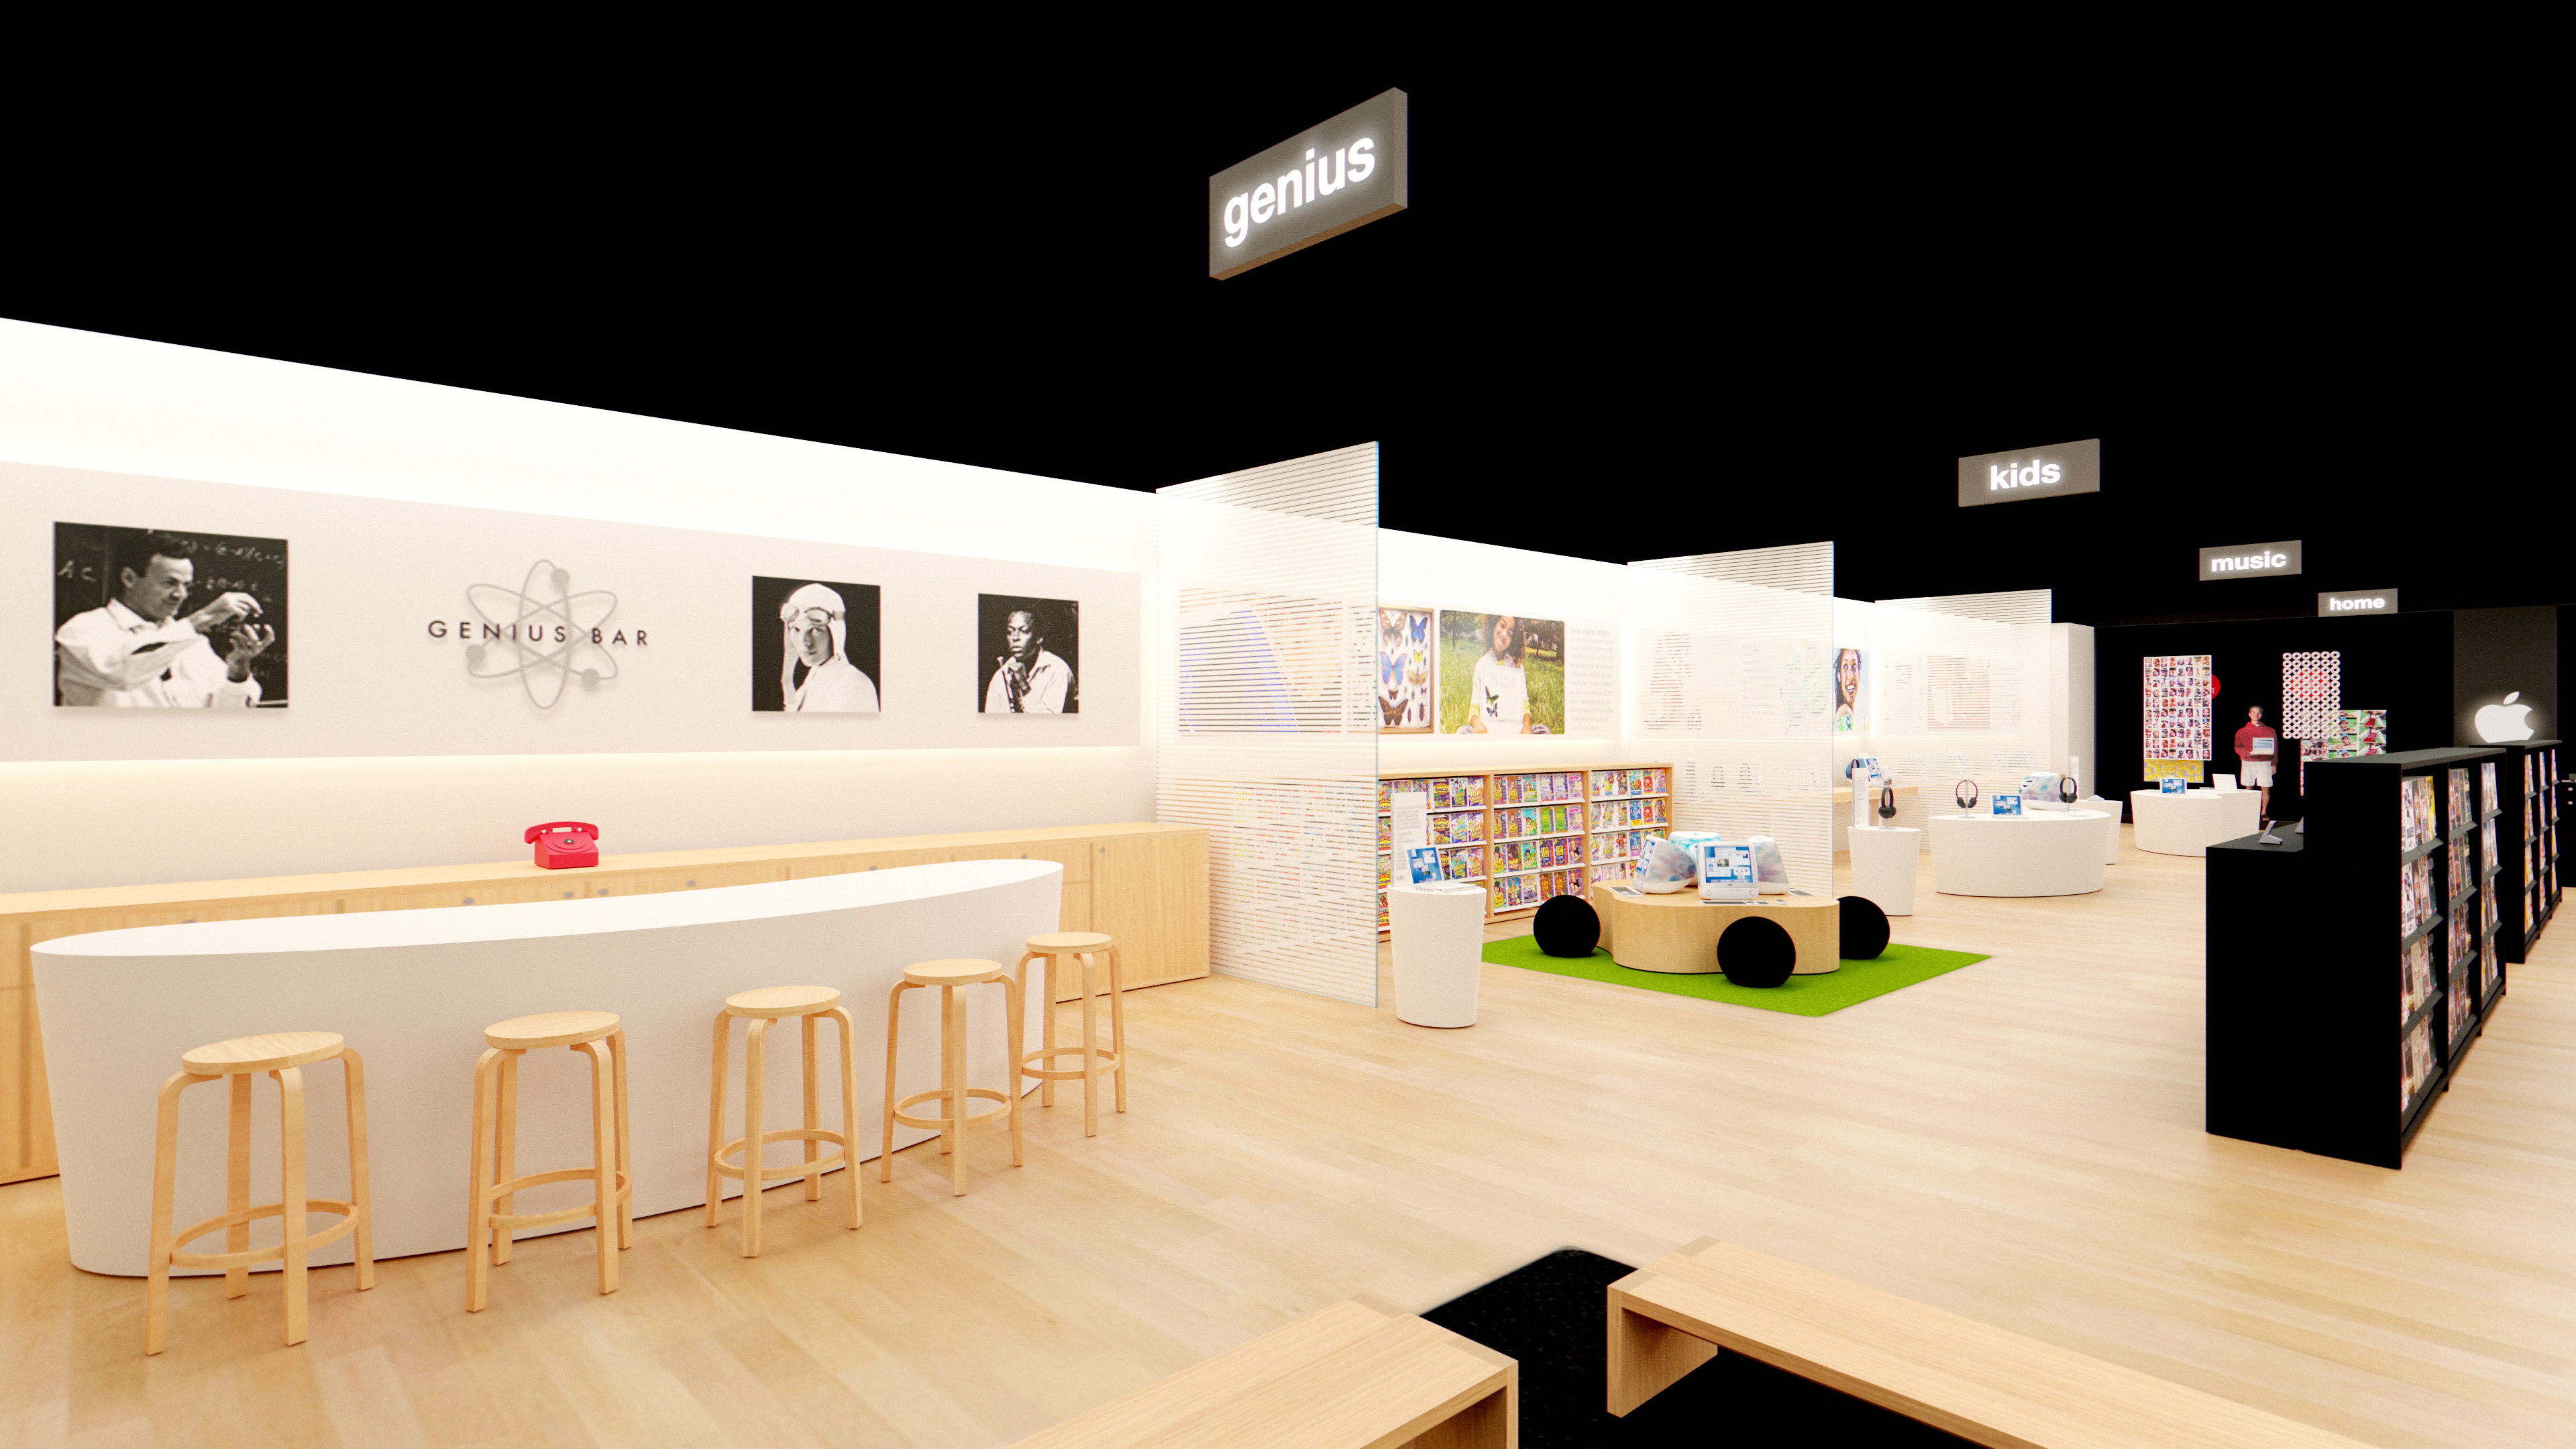 Inside an augmented reality model of the world's first Apple Store.